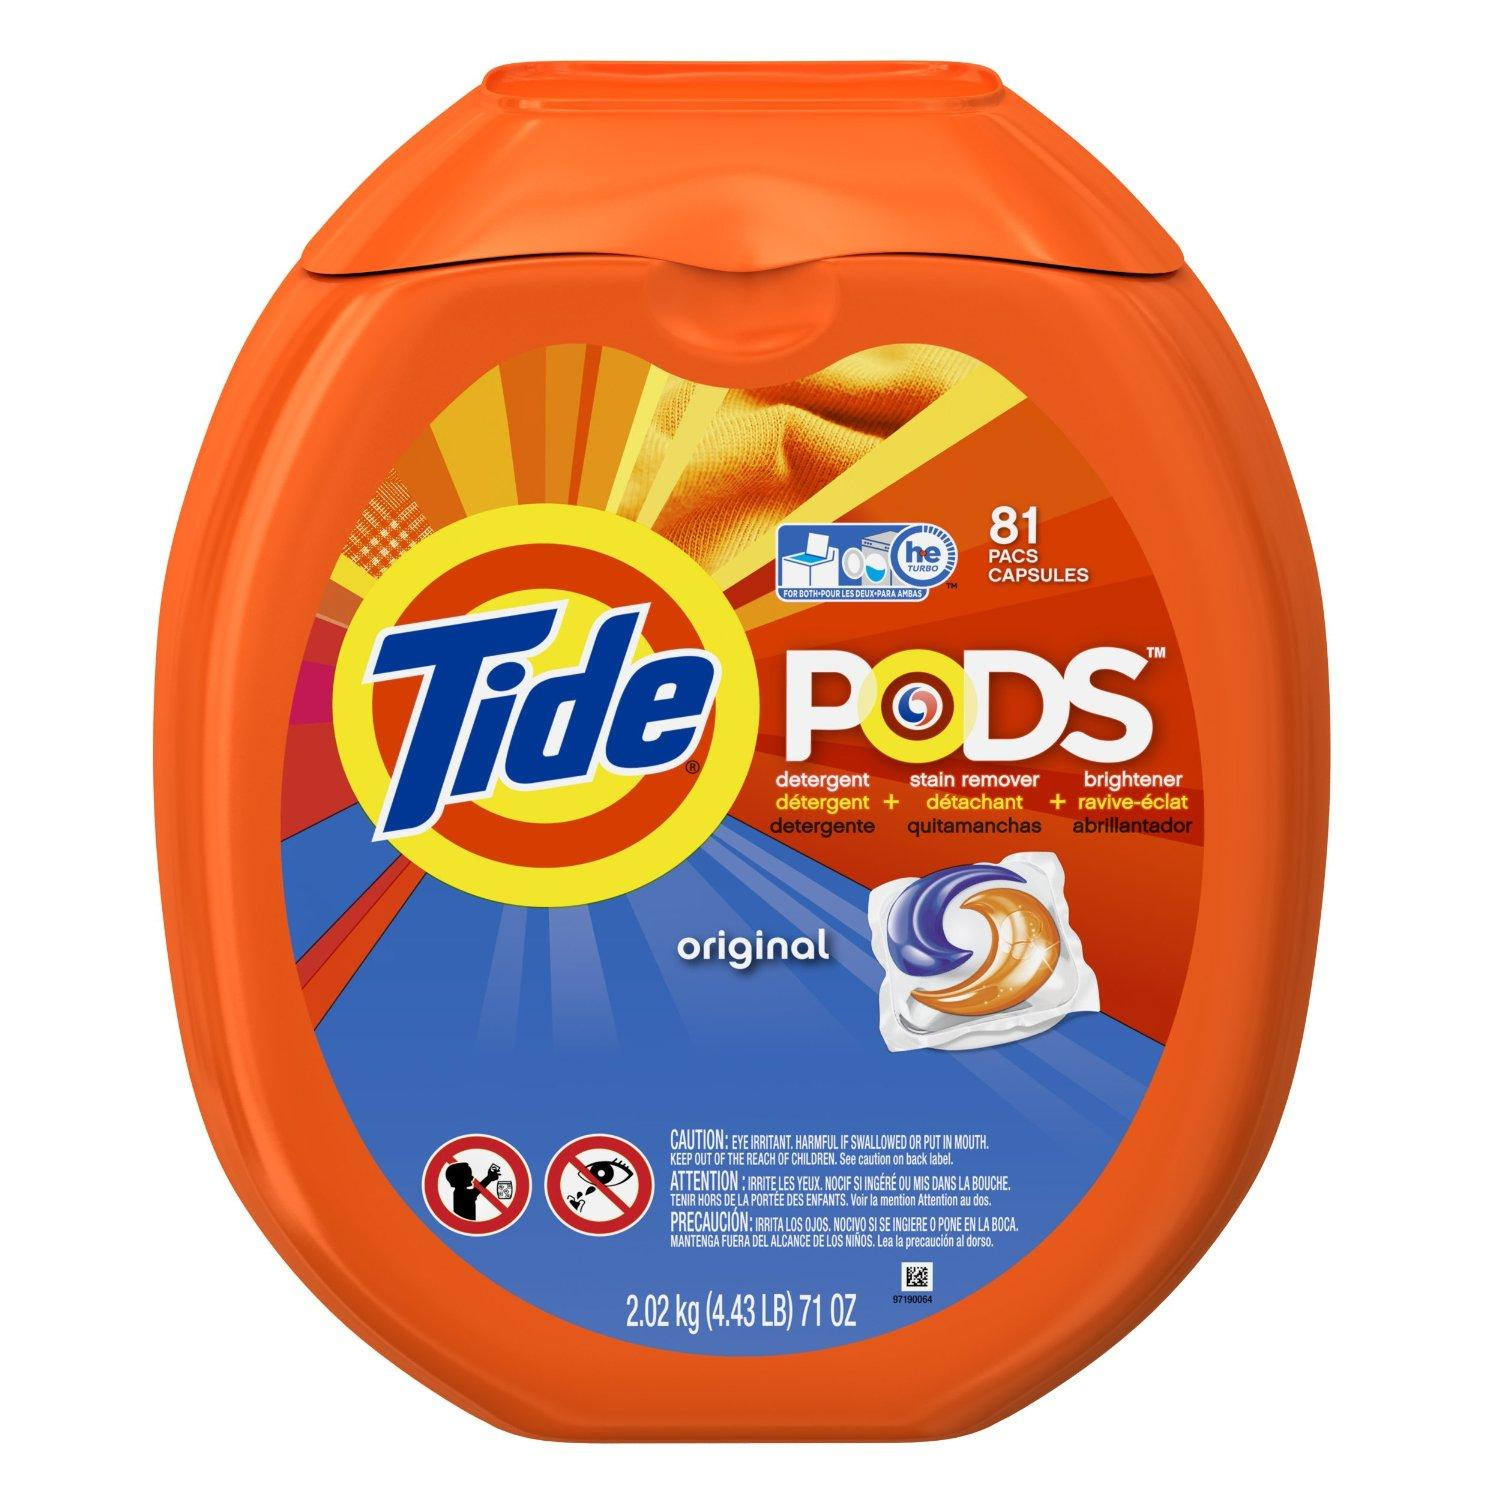 Tide Pods Laundry Detergent Packs Tub, Original, 81 Count